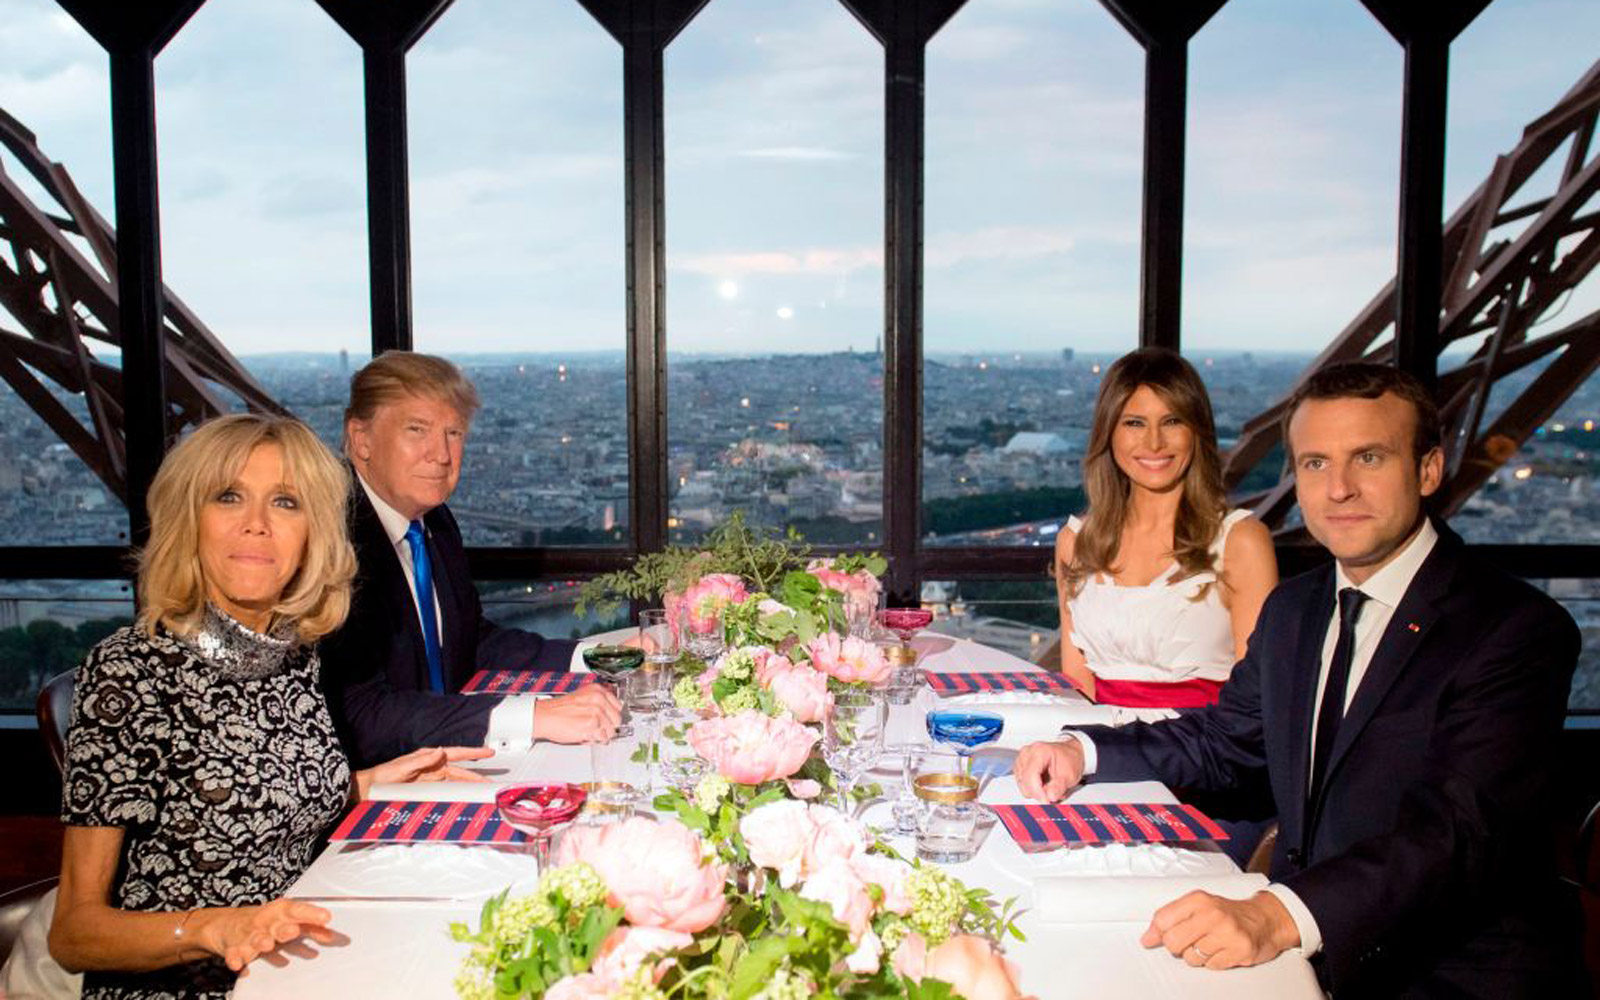 Here's What President Trump and Emmanuel Macron Ate at the Michelin-starred Restaurant Inside the Eiffel Tower